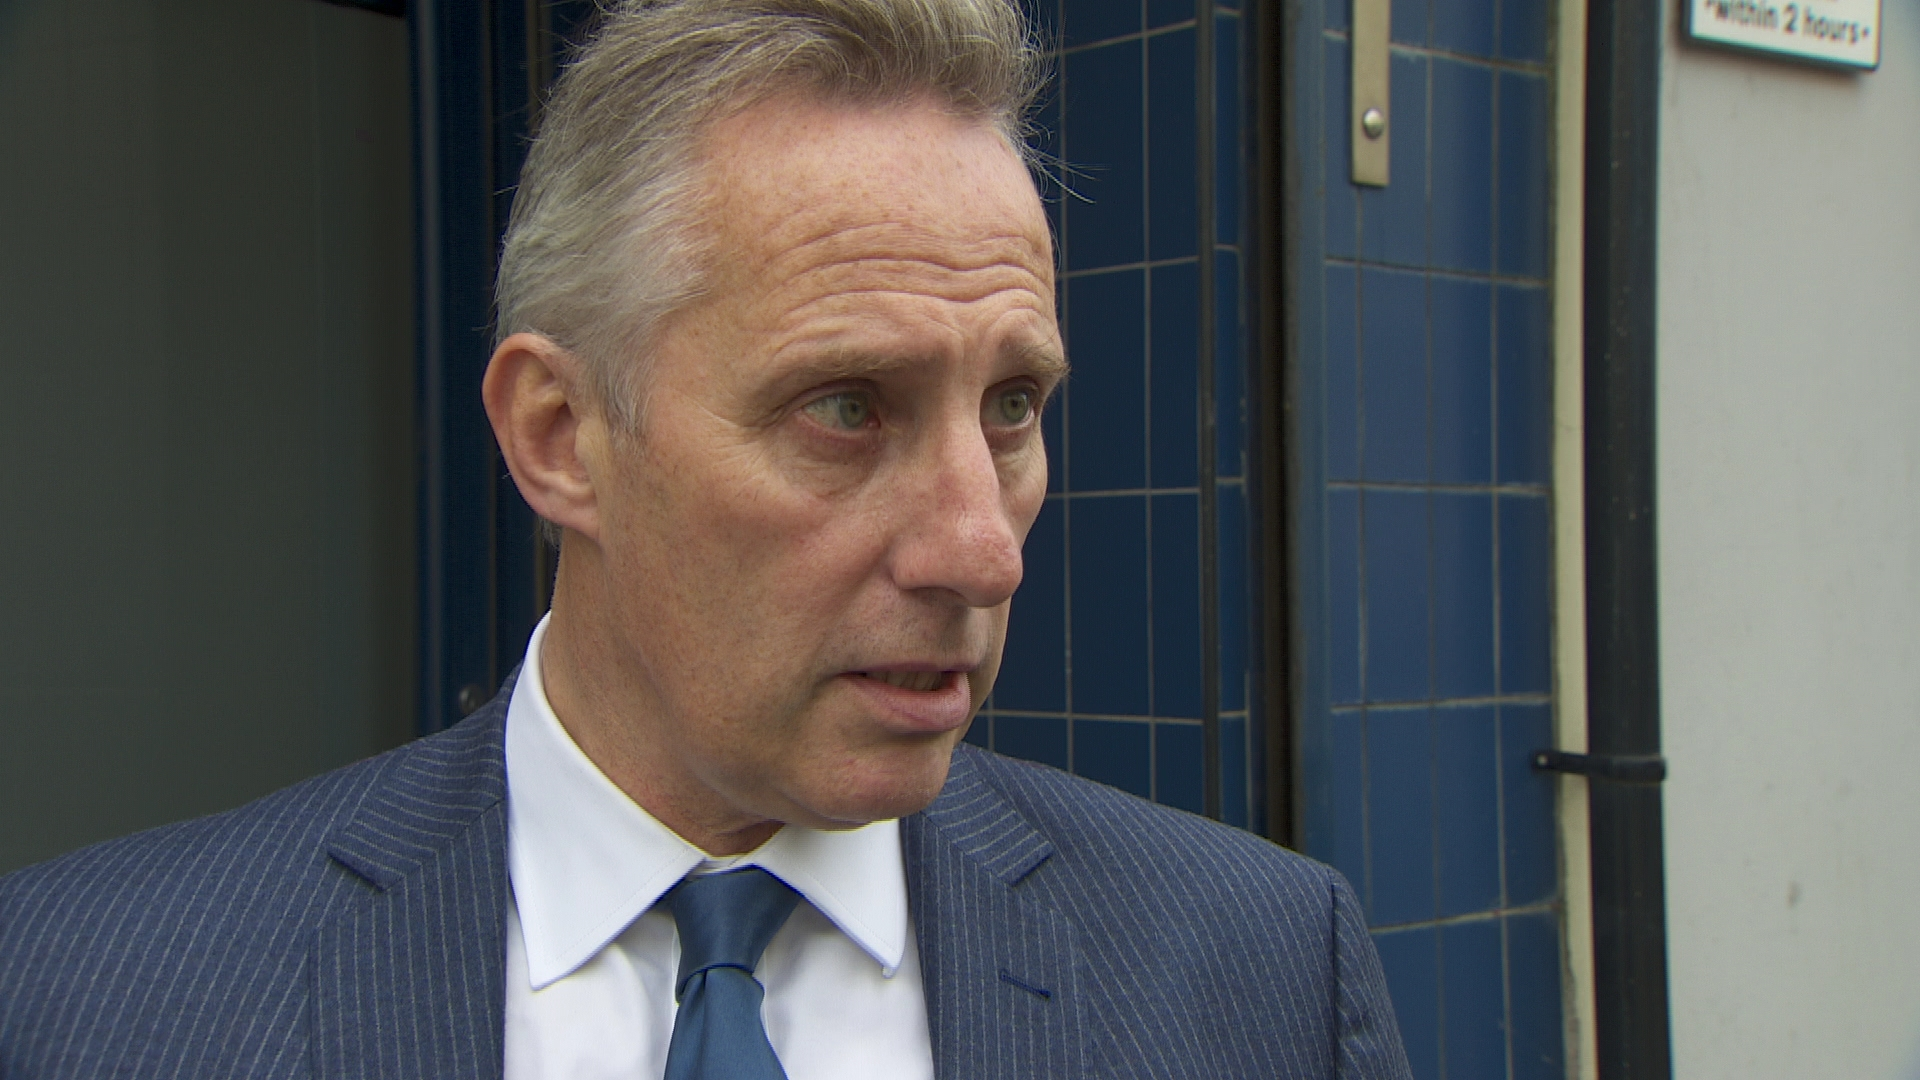 Ian Paisley: DUP MP 'stunned' and 'humbled' at keeping seat